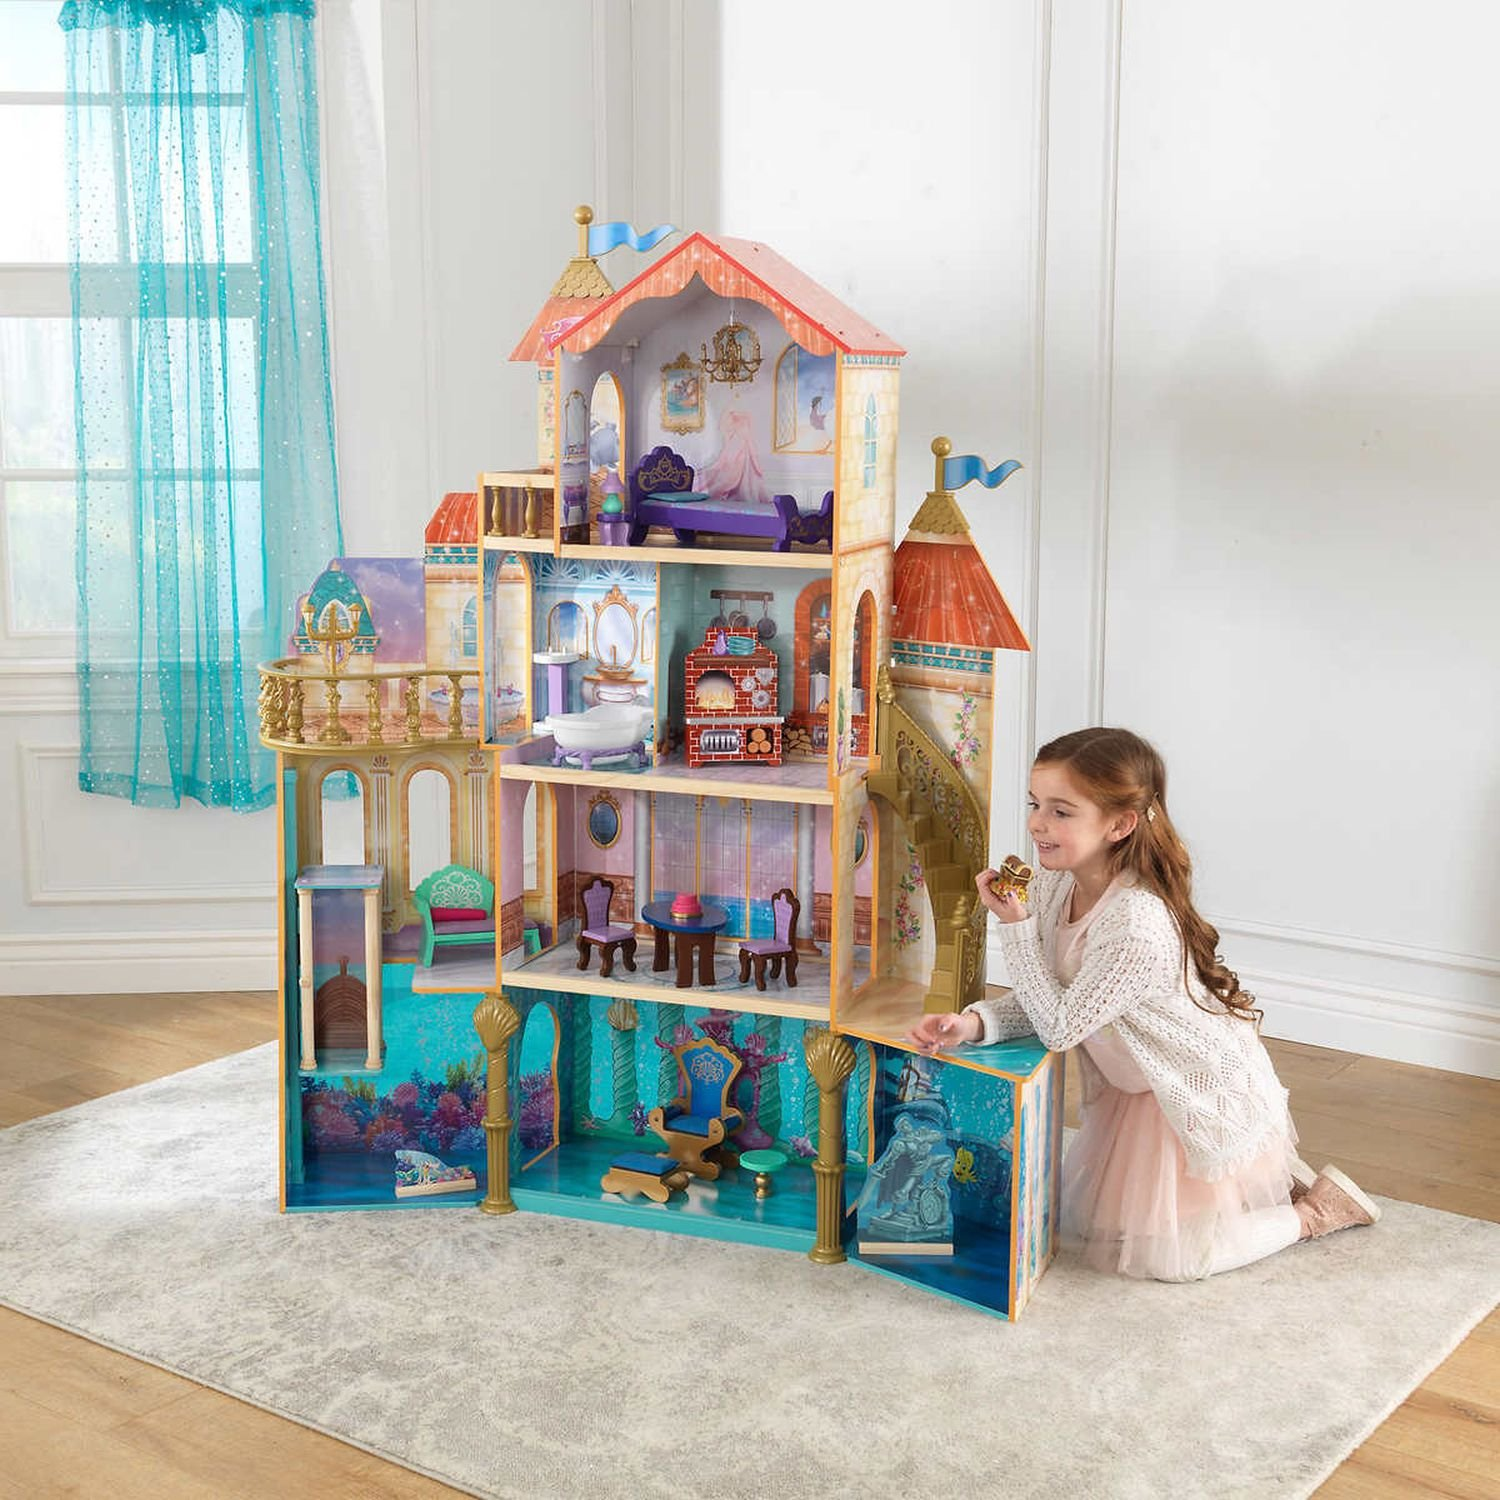 KidKraft Ariel Under the Sea Kingdom Dollhouse, Massive Tall Dollhouse featuring 4 Levels with 11 Areas of Play, Perfect Gift for your Princess Girls Toy Kids Christmas Gift